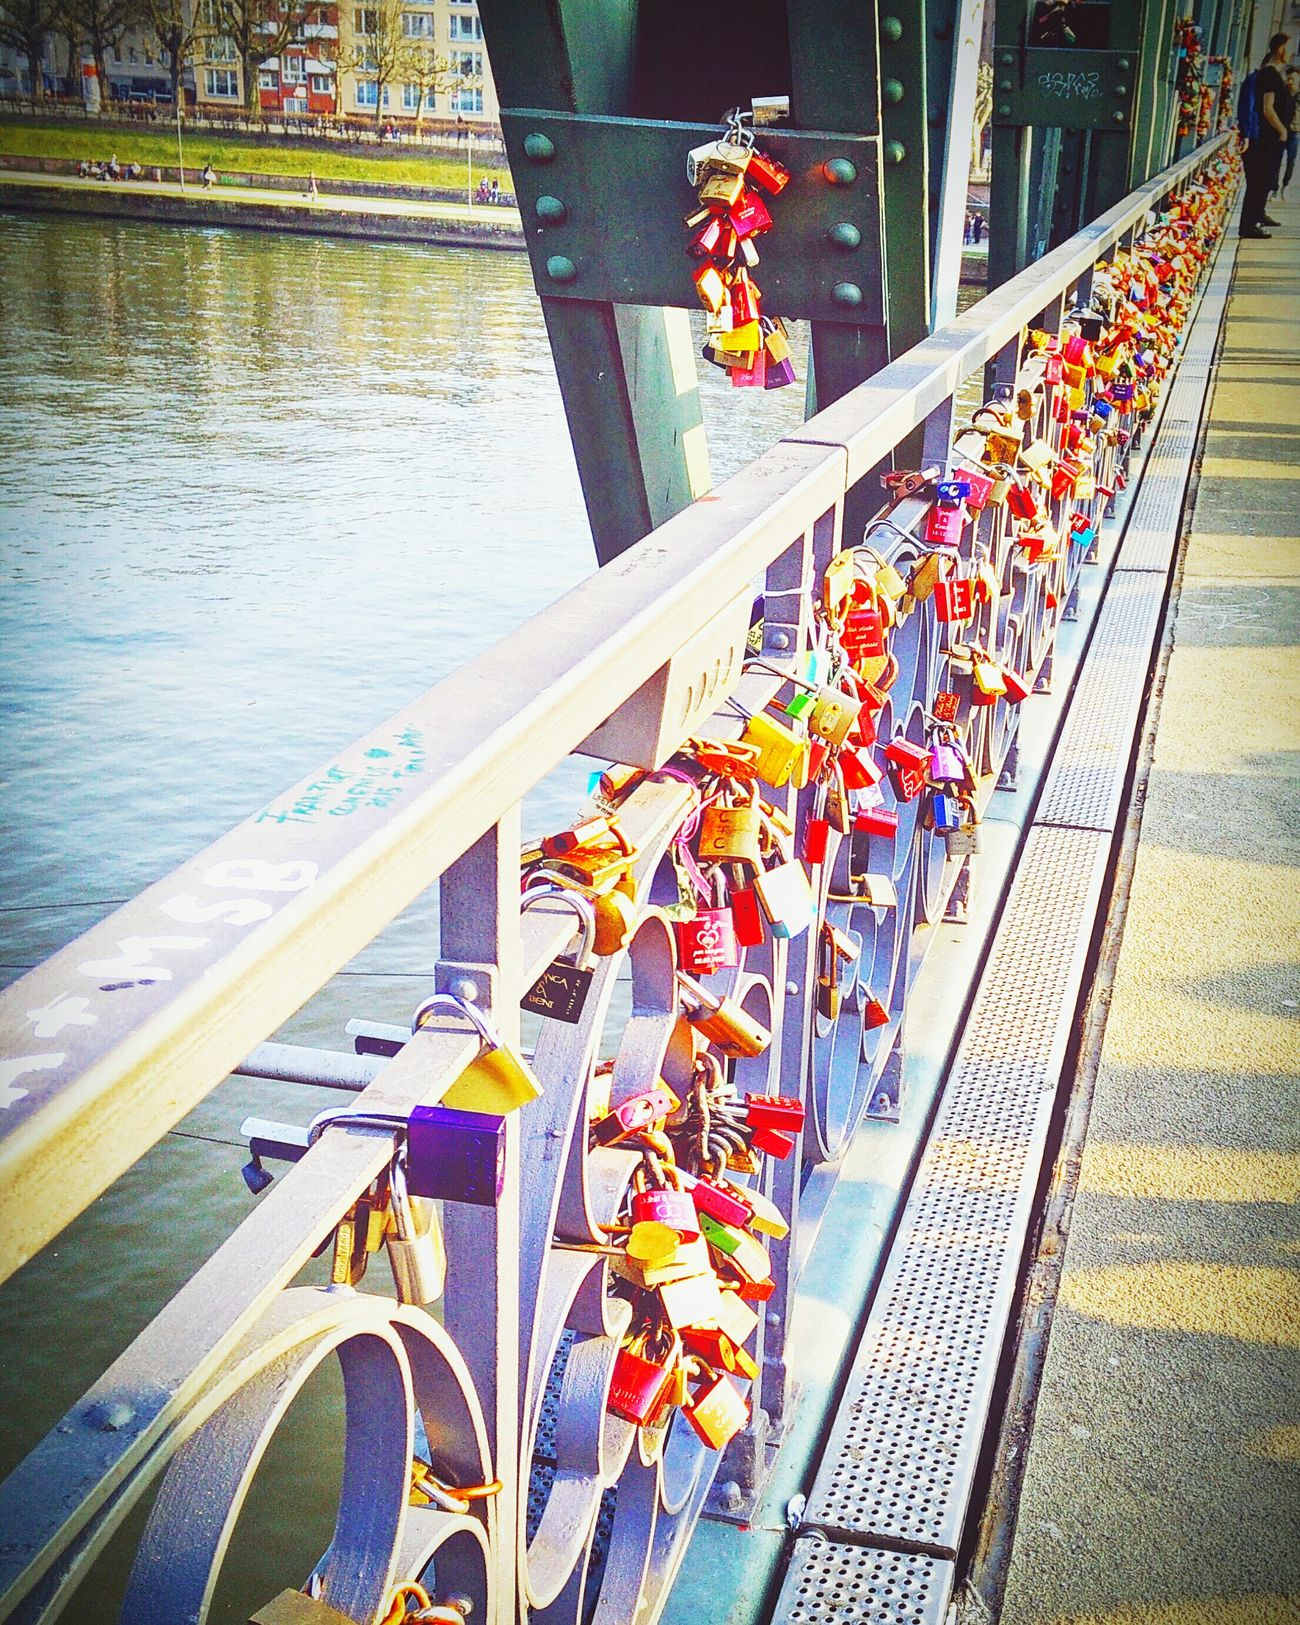 Photography In Motion Center Focus Frankfurt Love Locks Bridge